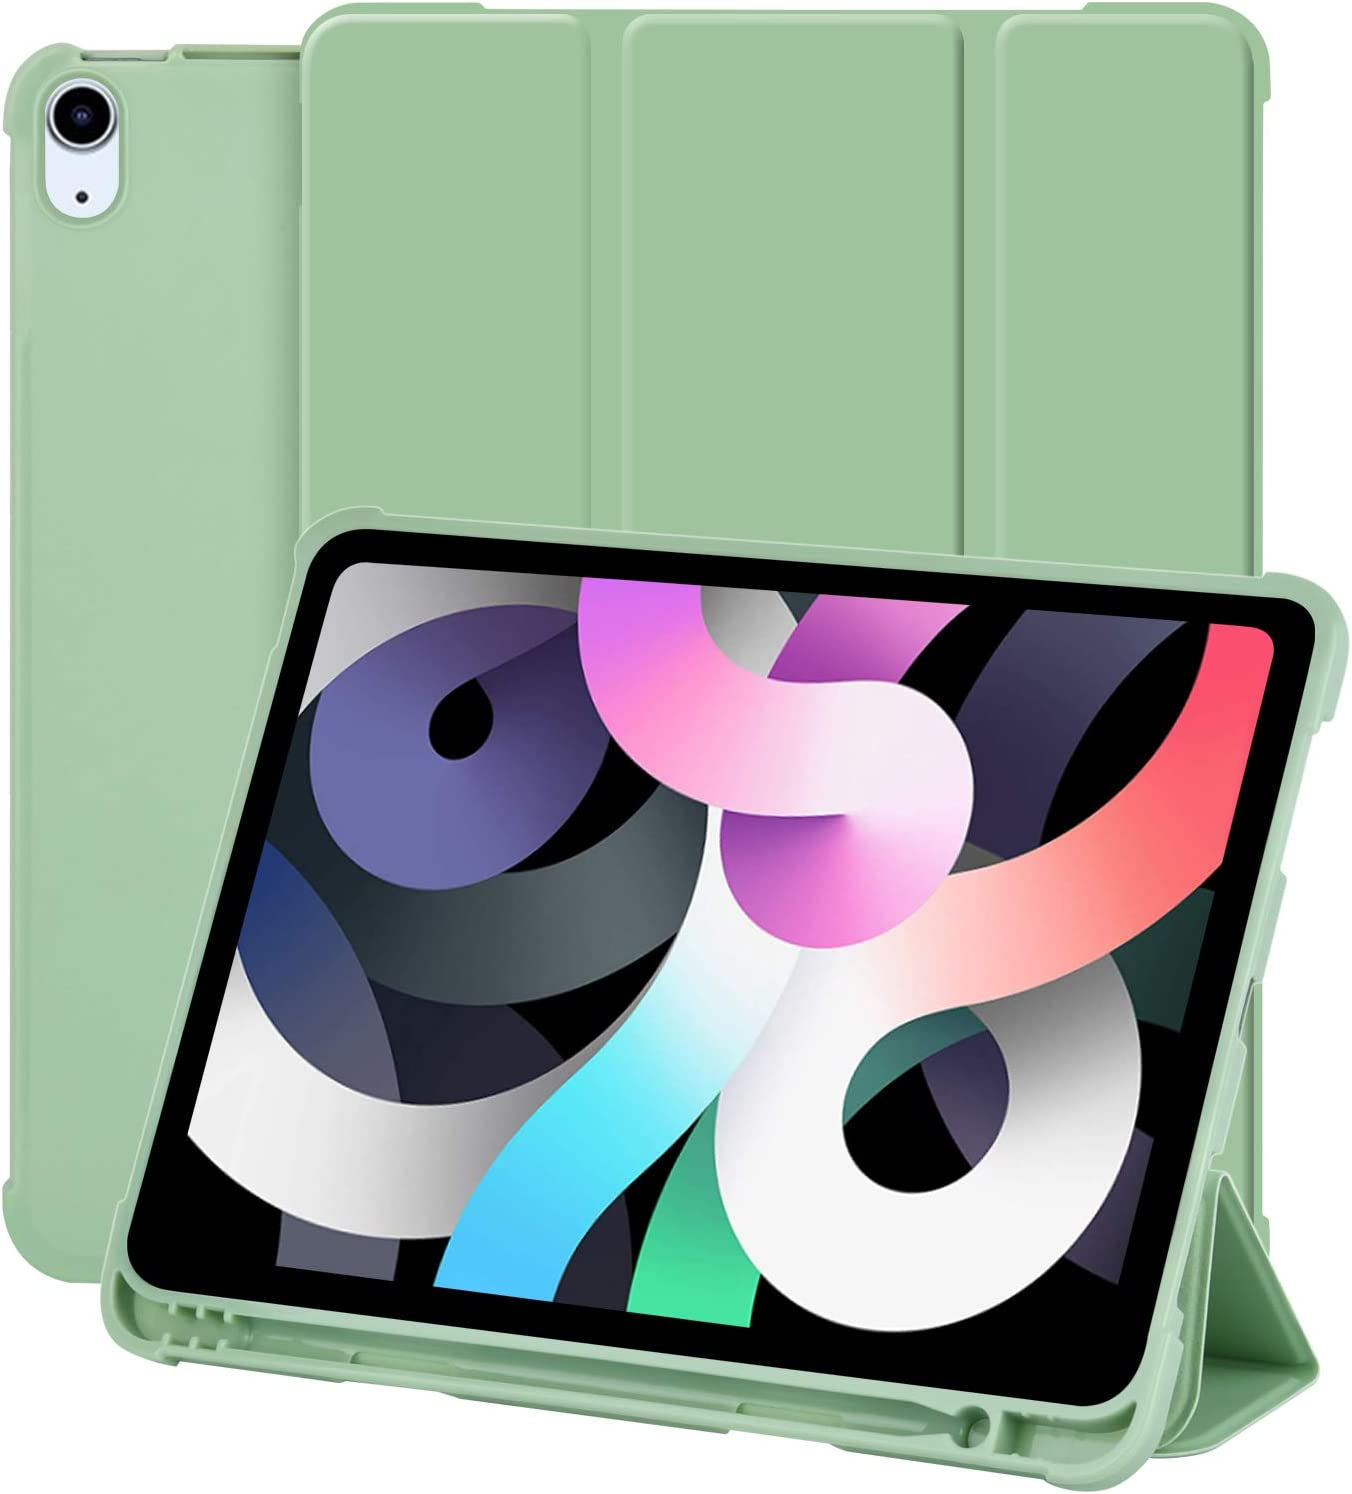 iPad Air 4th Generation Case 10.9 Inch 2020 iPad Air 4 Case with Pencil Holder [Support Touch ID & Apple Pencil Charging/Pair], Slim Trifold Stand Smart Cover Auto Wake/Sleep - Green